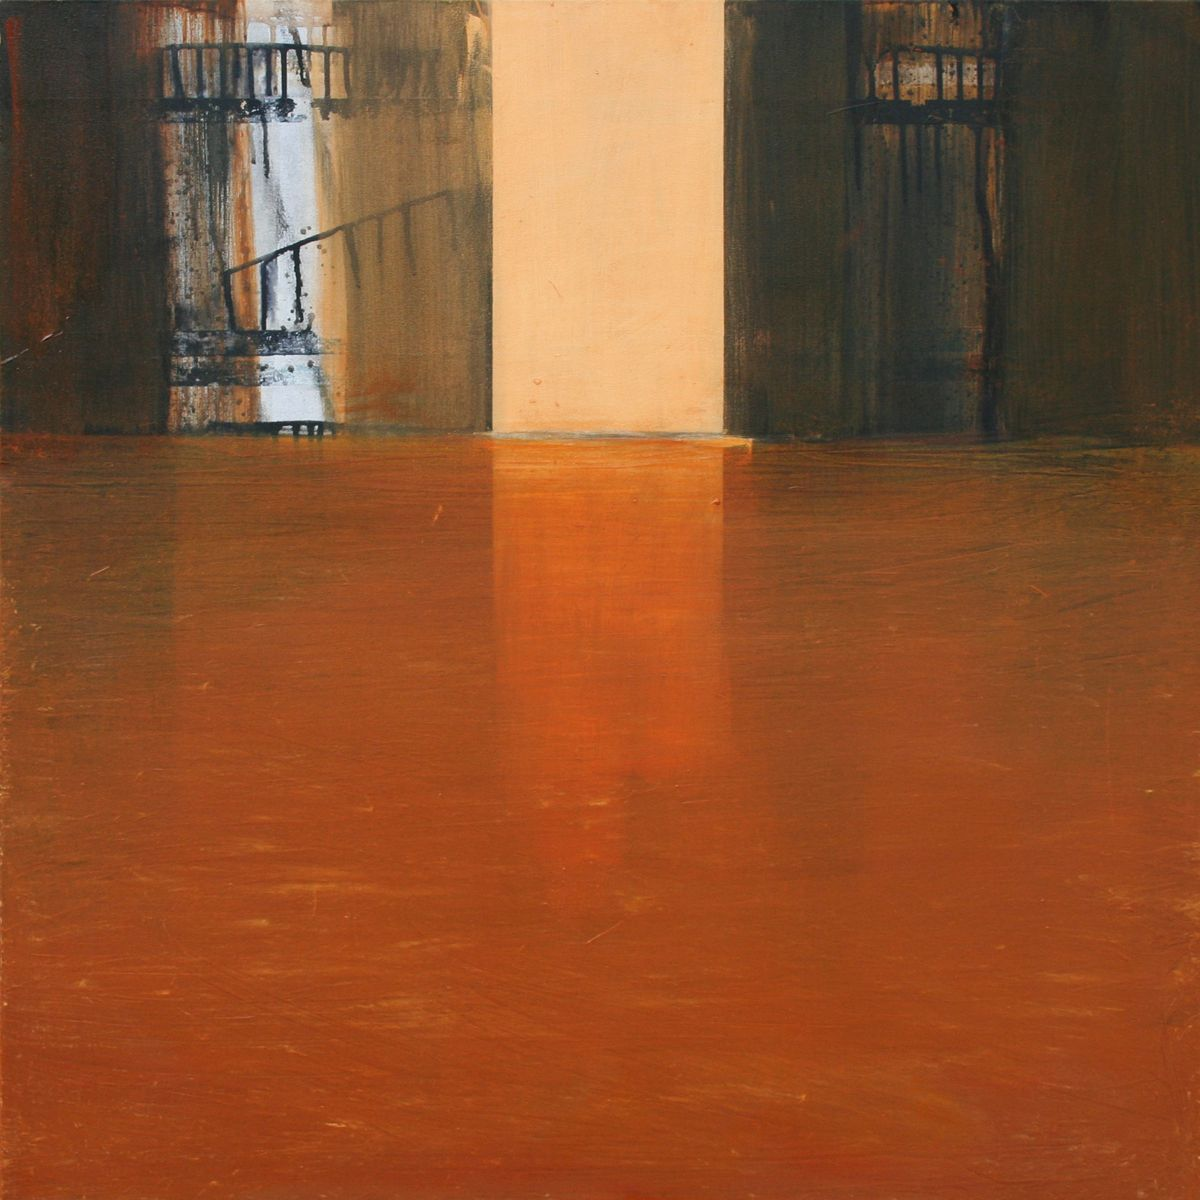 Passage 09 - 100x100cm - oil on canvas